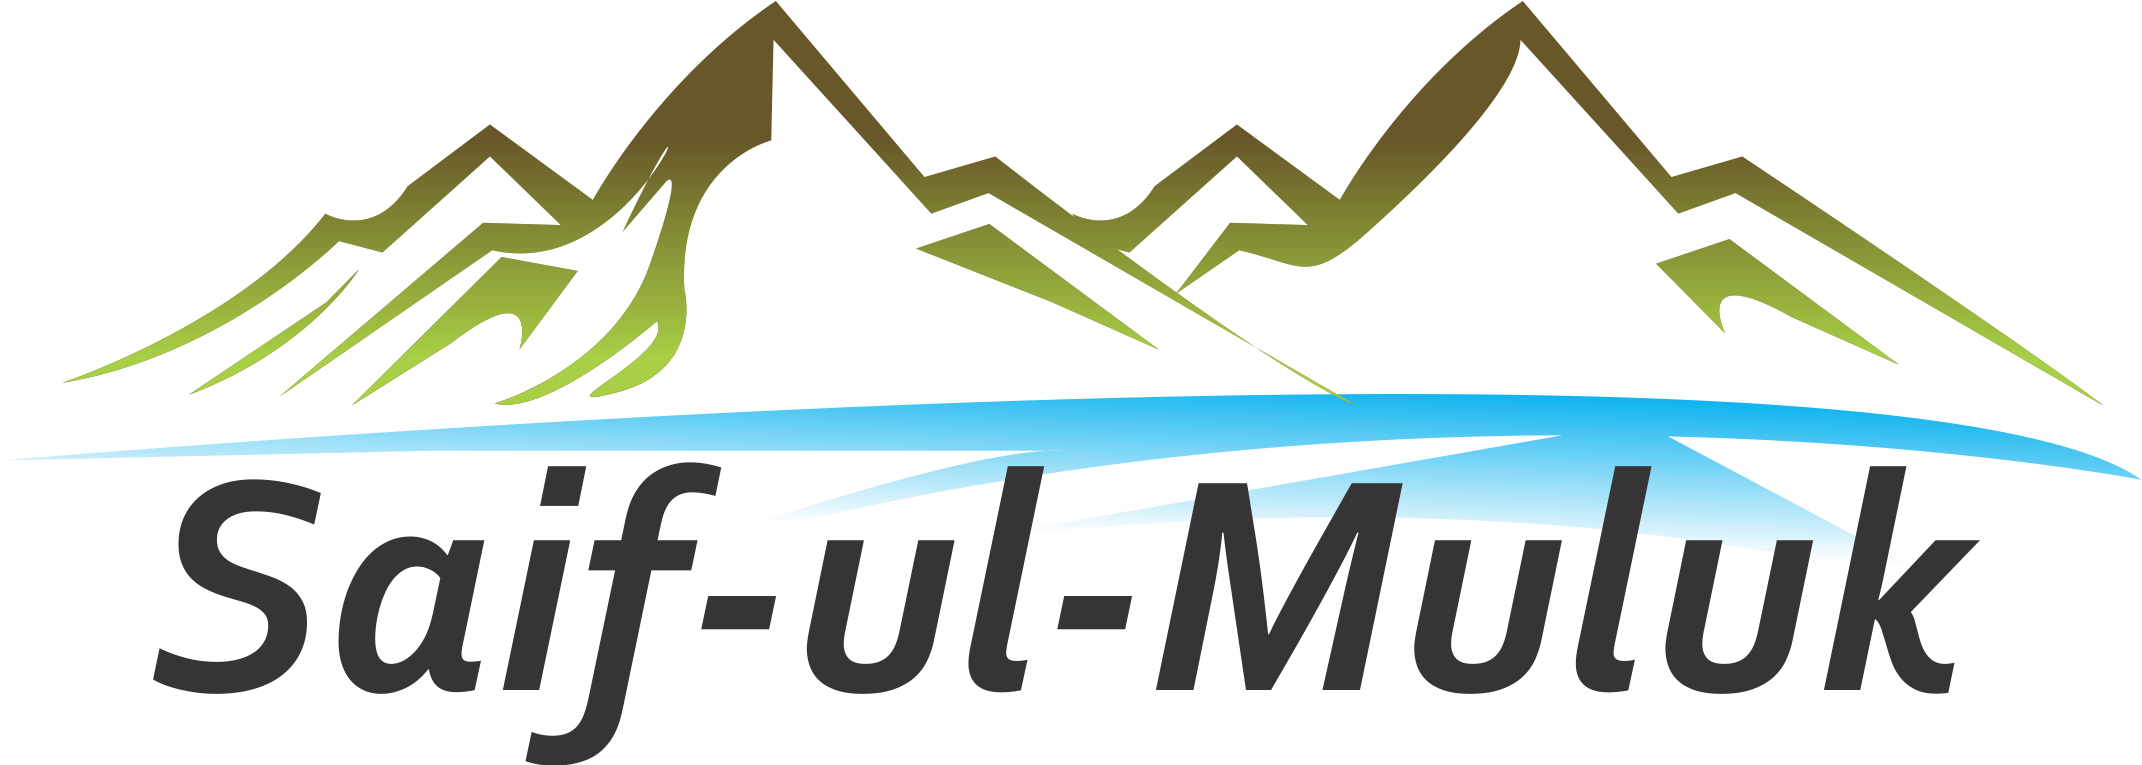 SaifulMuluk Tour and Travel Company | Saif-Ul-Muluk | Cart - SaifulMuluk Tour and Travel Company | Saif-Ul-Muluk